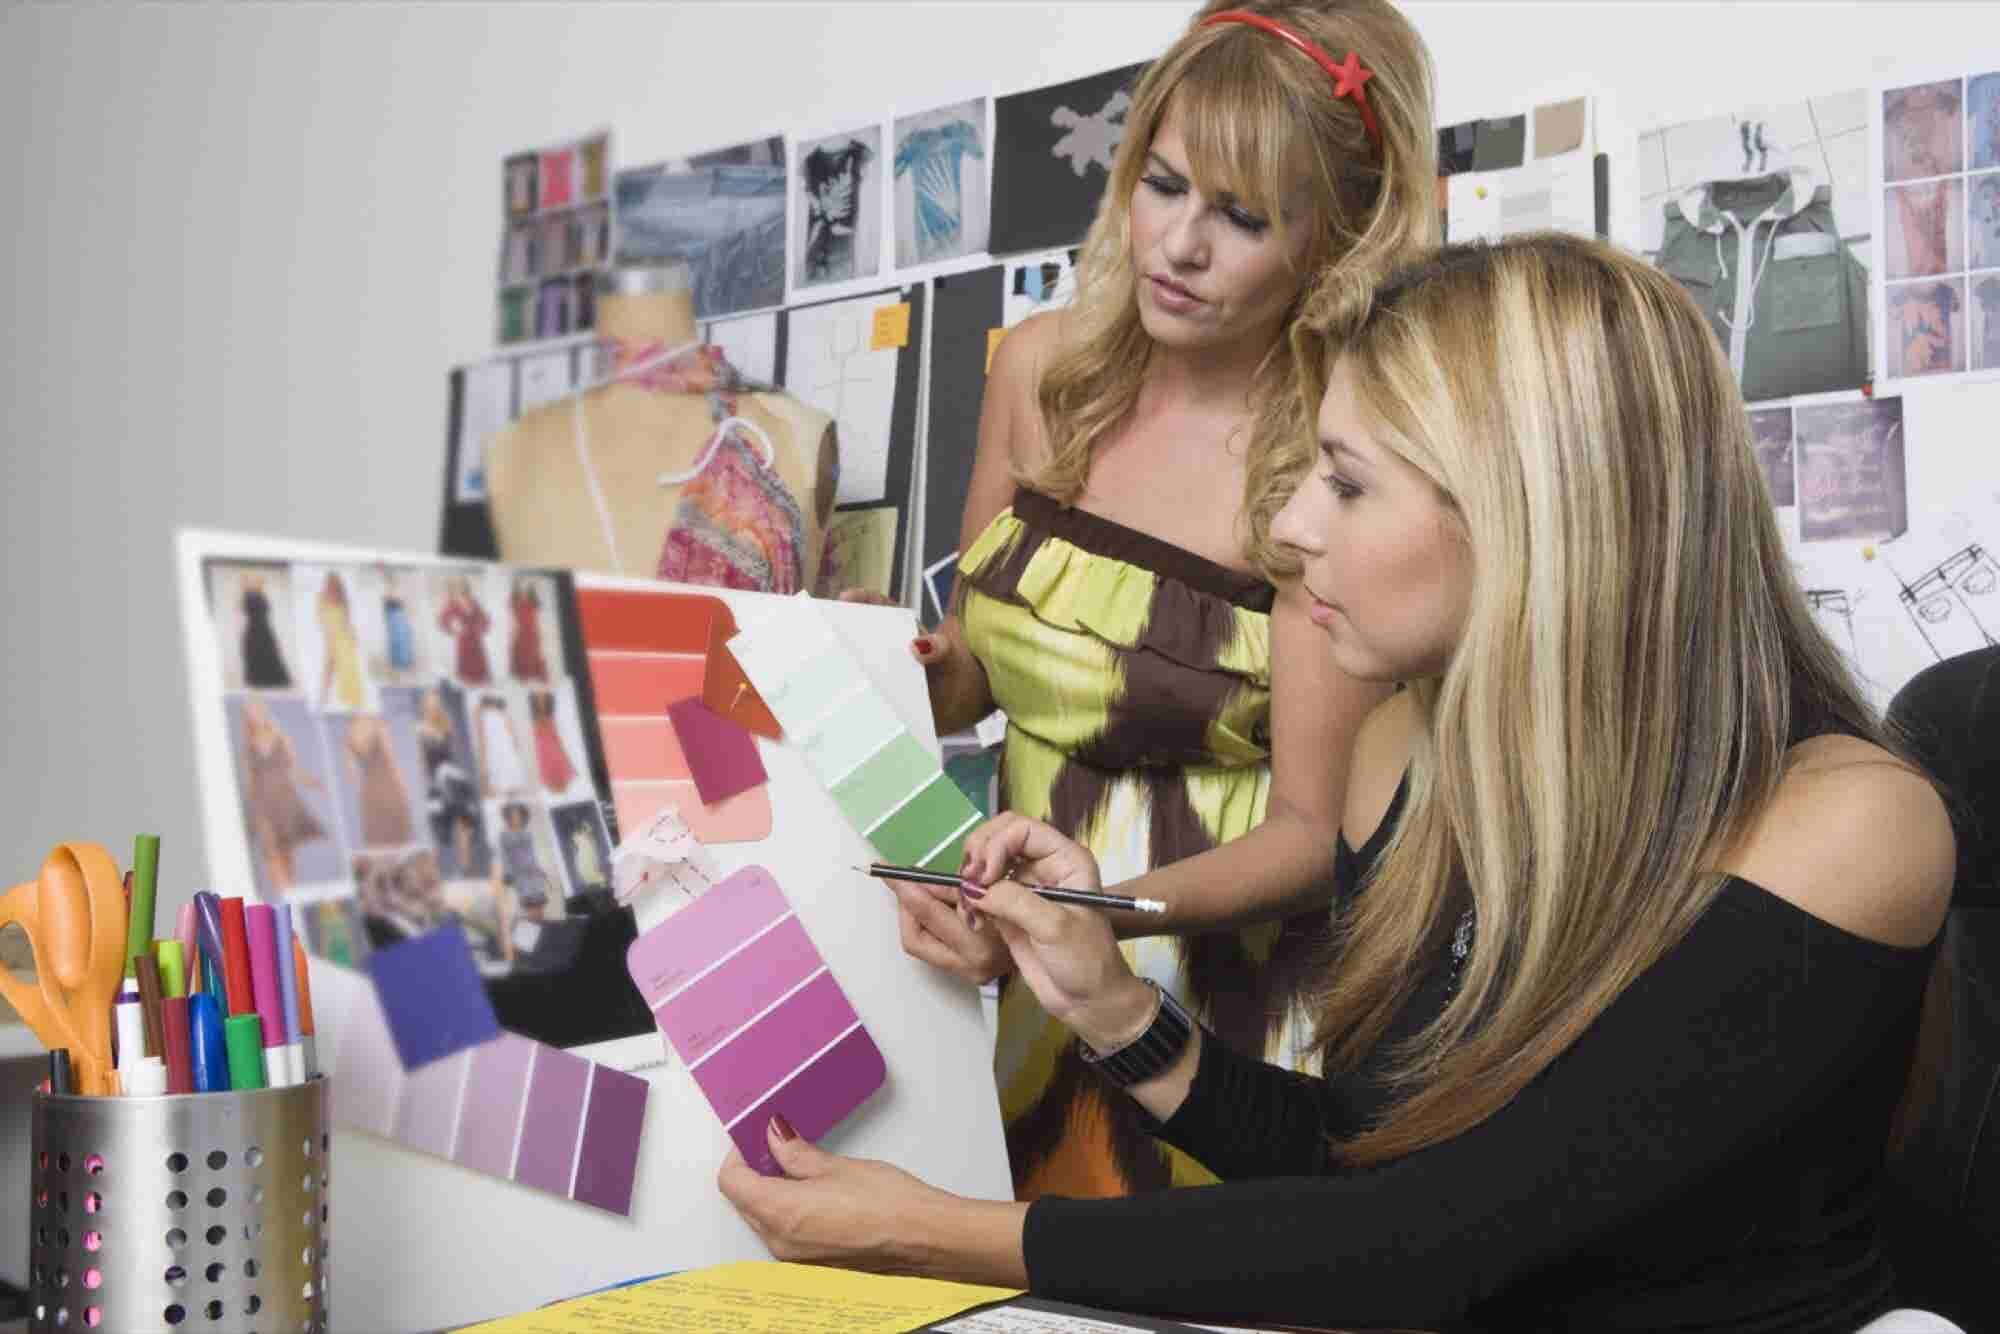 The Relationship Between Marketing and Design in the Fashion Industry